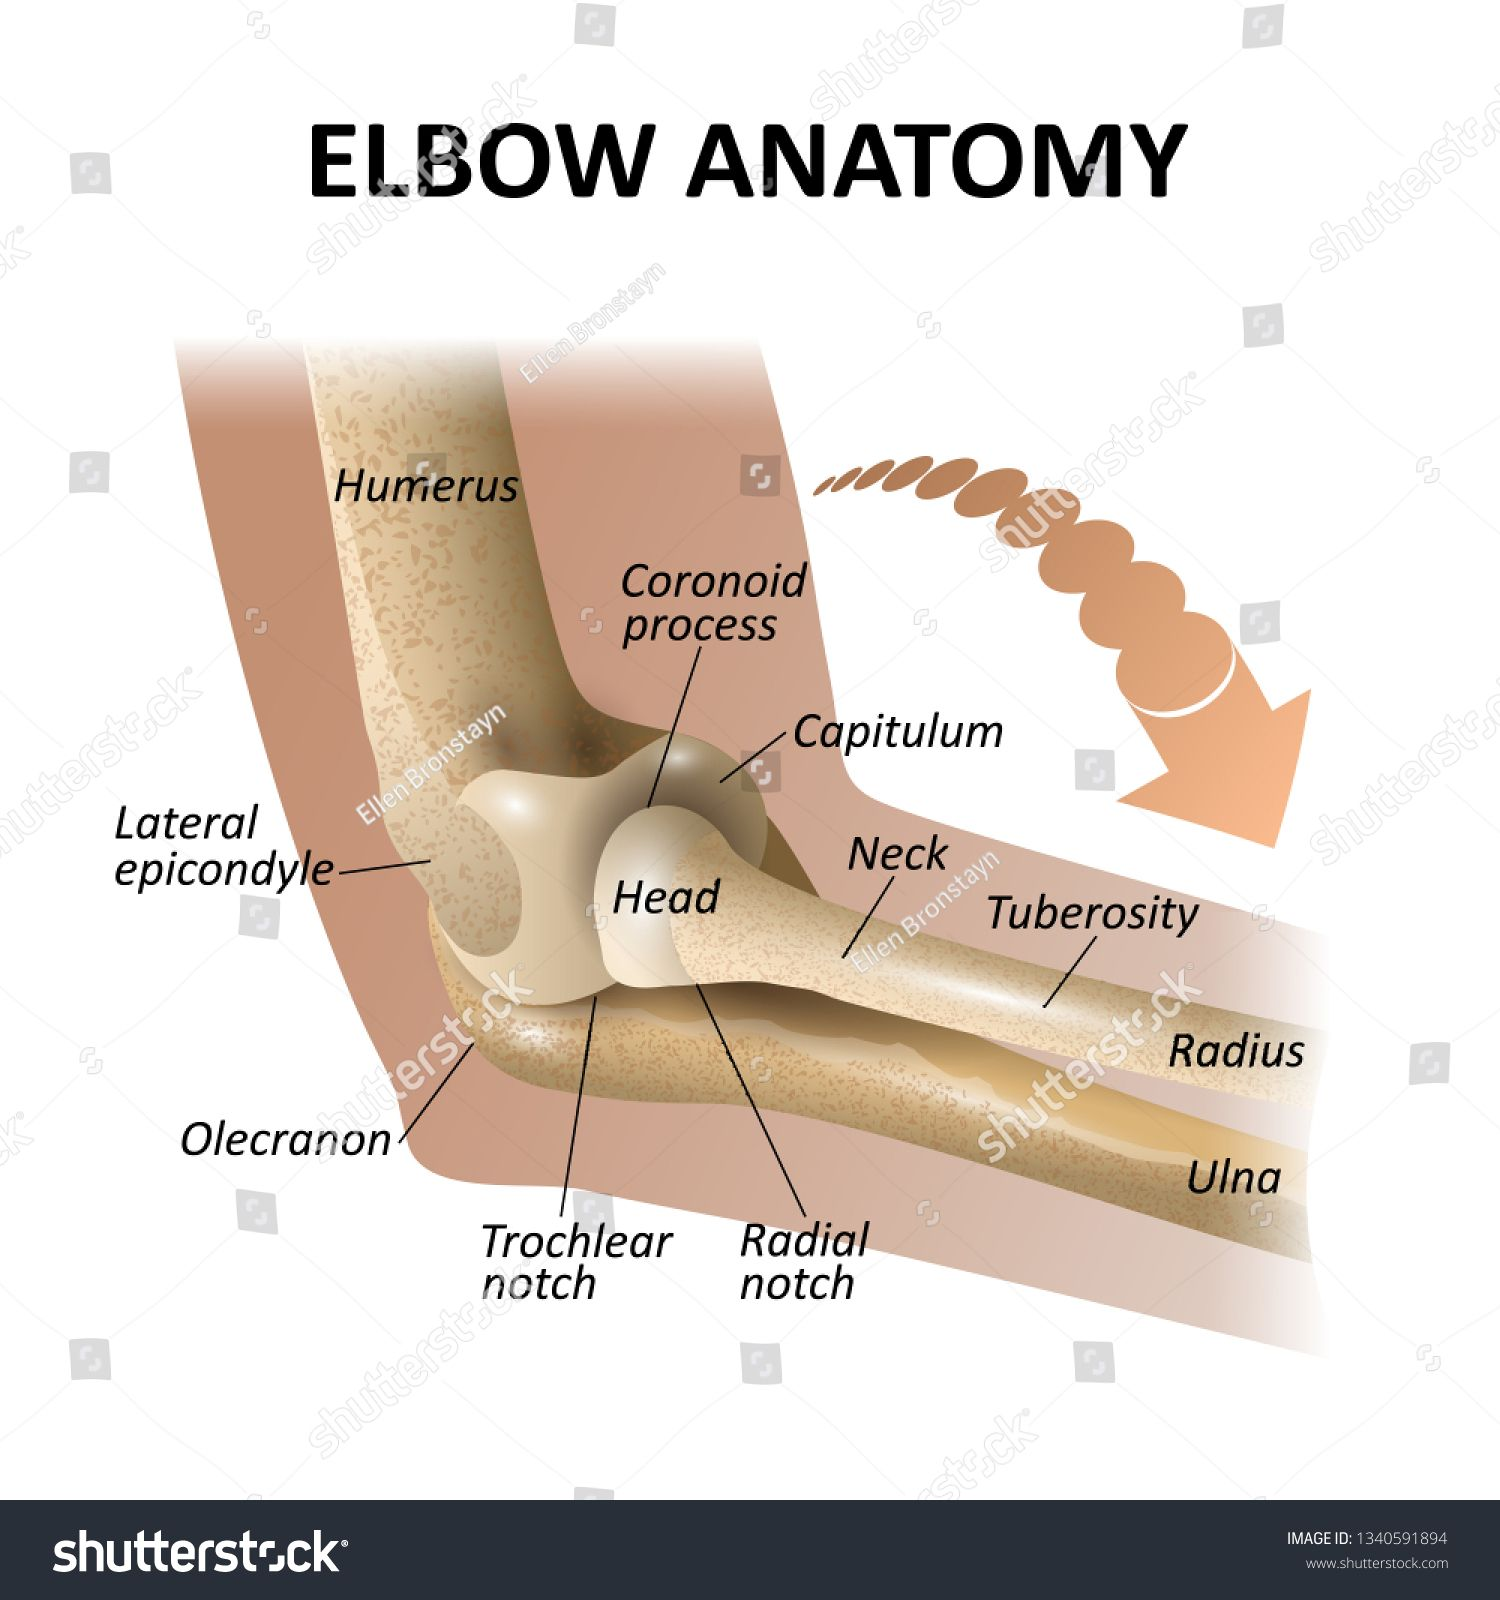 Anatomy of the elbow joint, medical education background ...